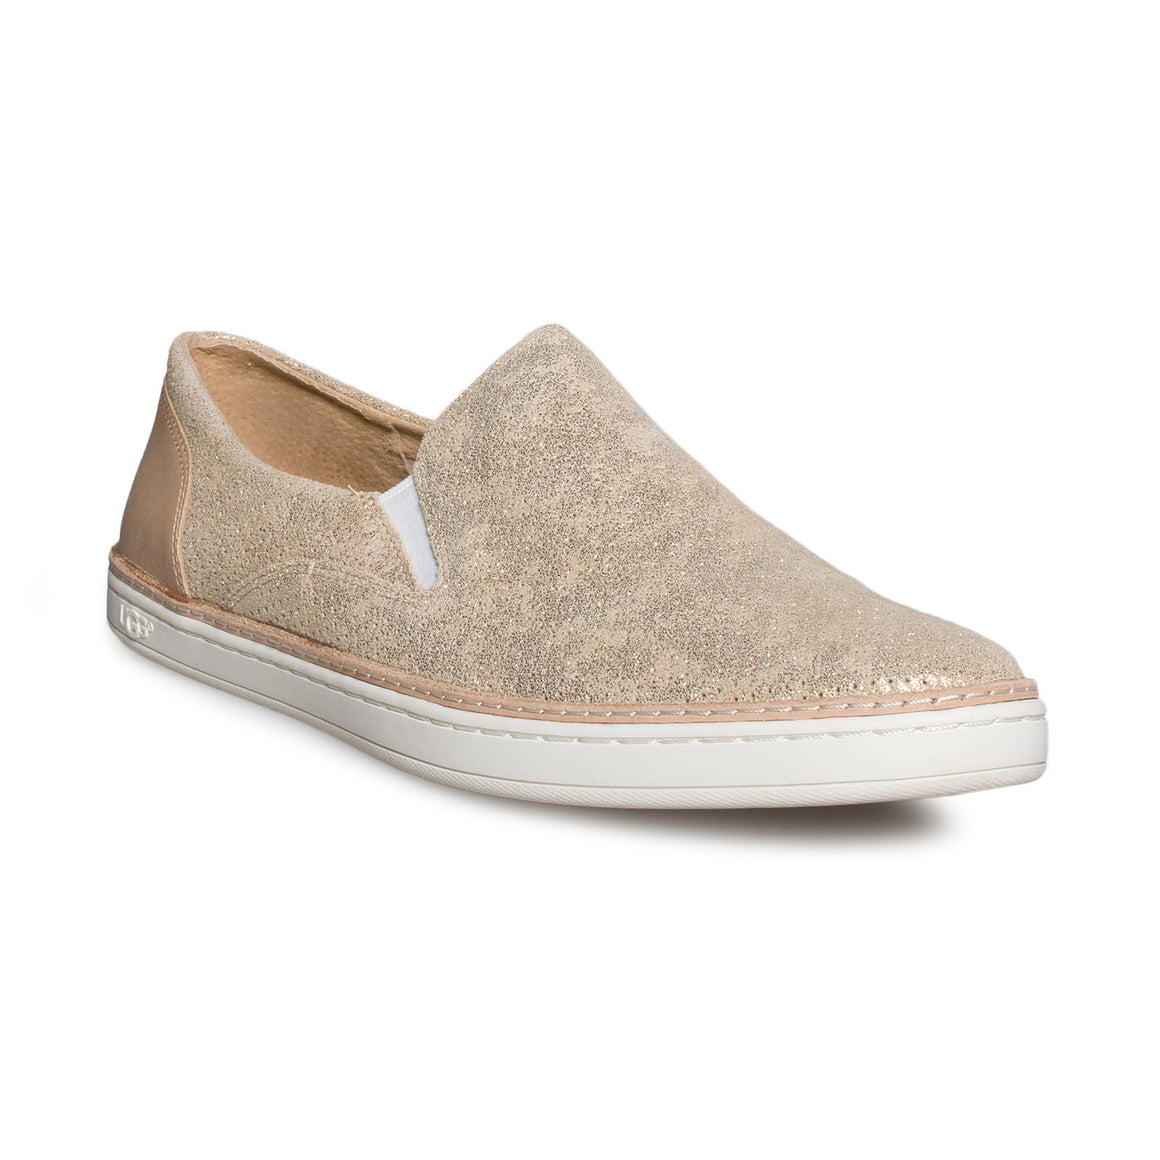 UGG Adley Perf Stardust Gold Shoes - Women's